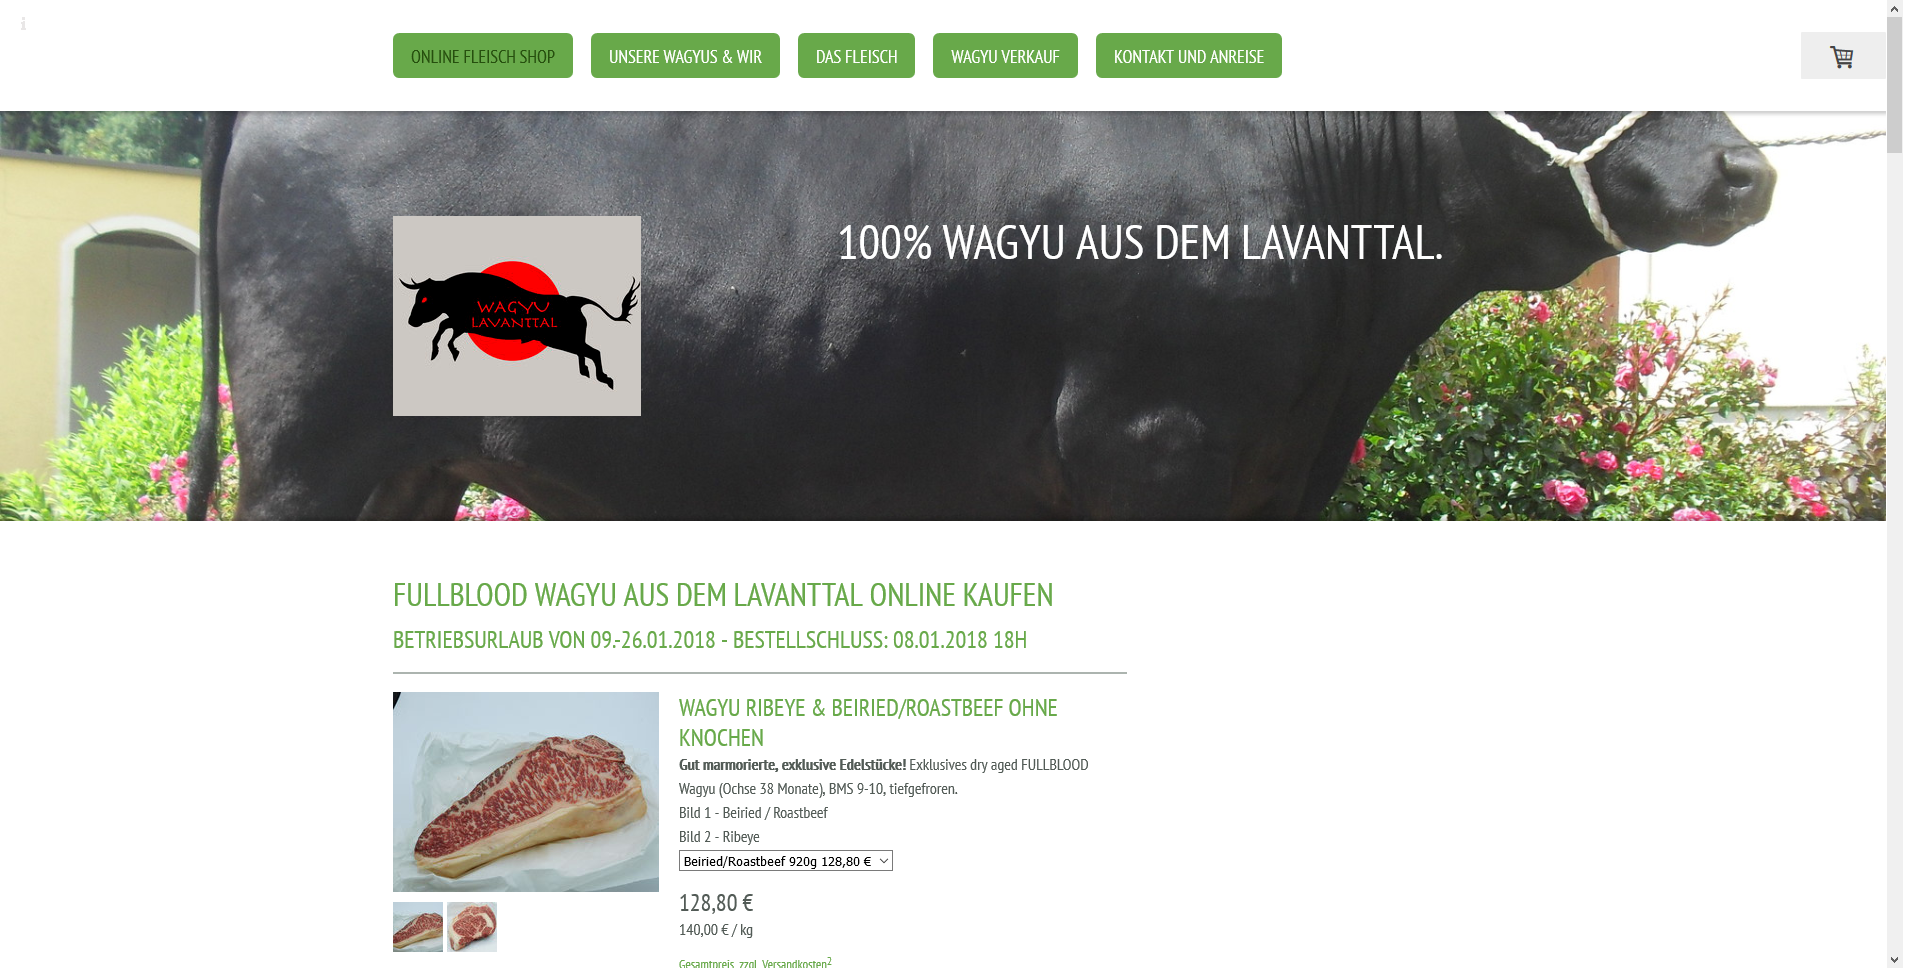 Wagyu Shop Oesterreich Zarte Steaks vom japan. Sch